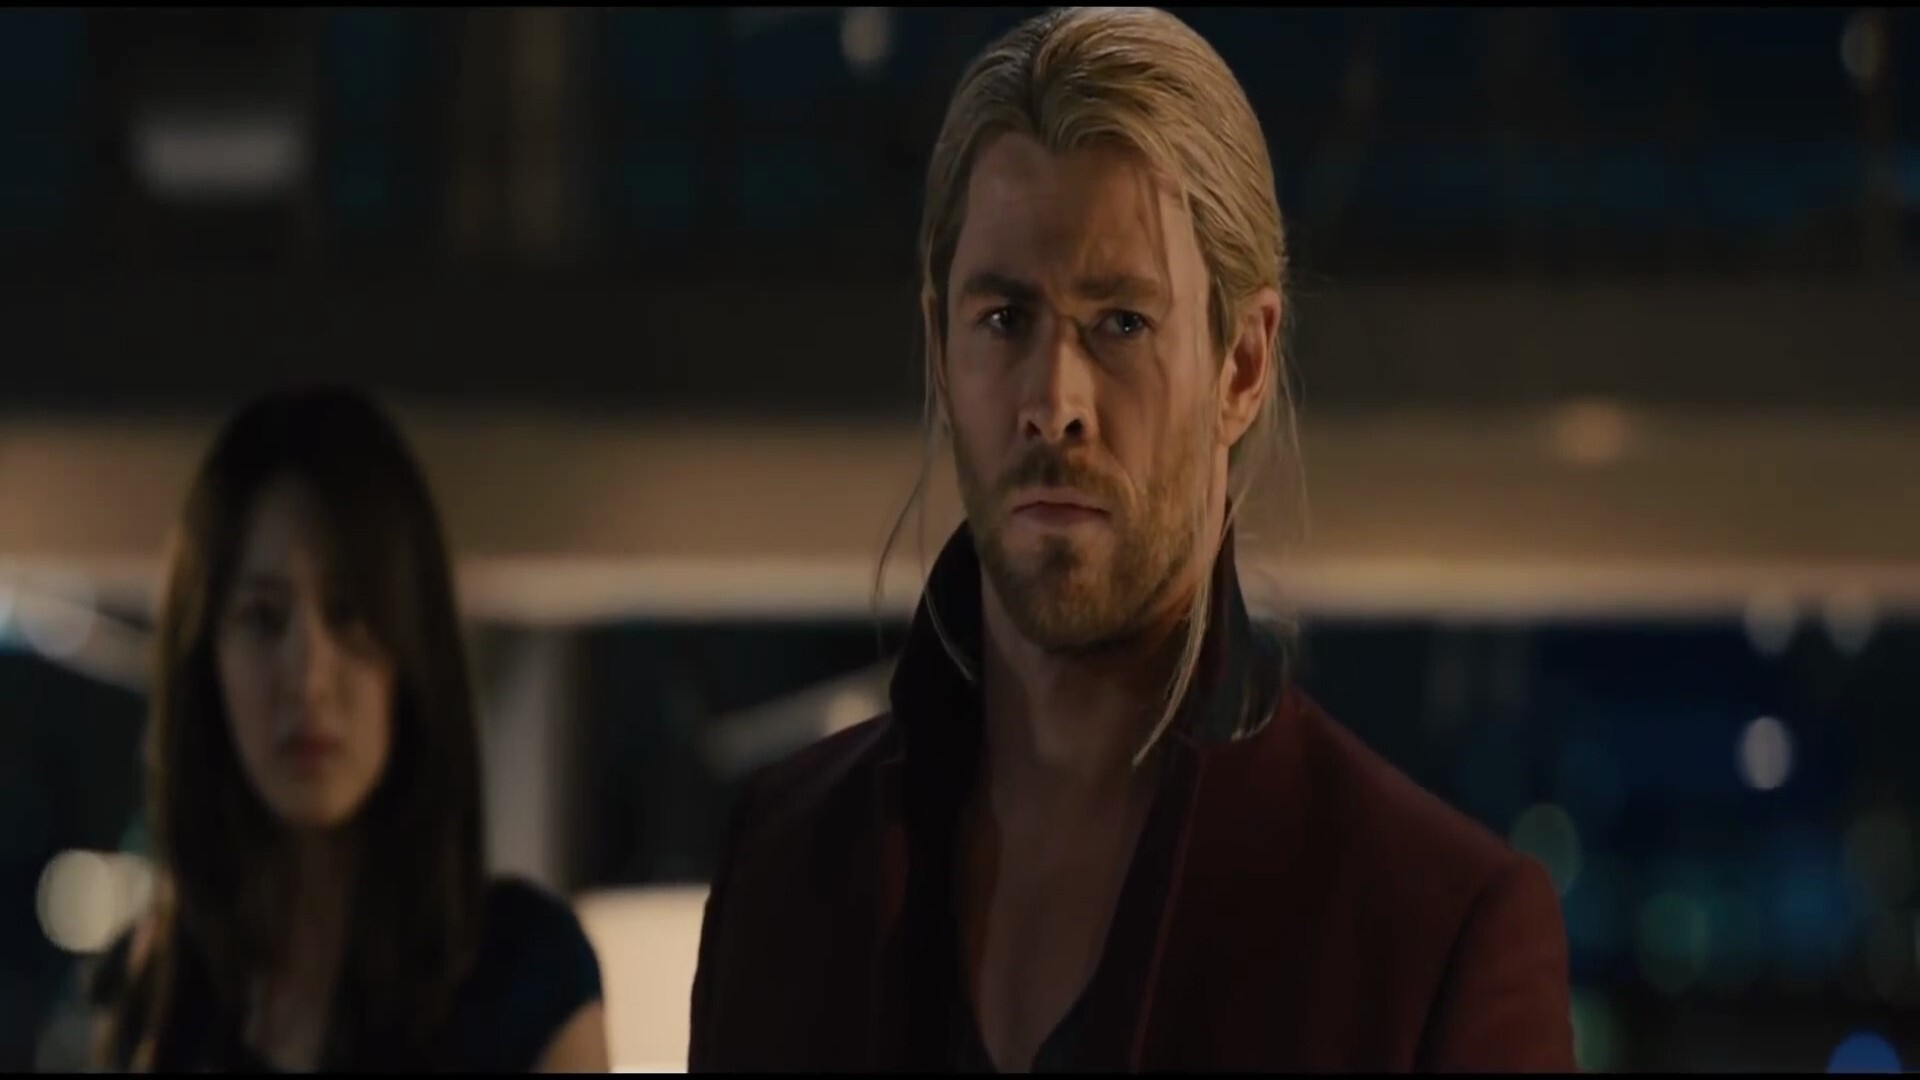 Chris Hemsworth As Thor In New Hollywood Movie The Avengers Hd